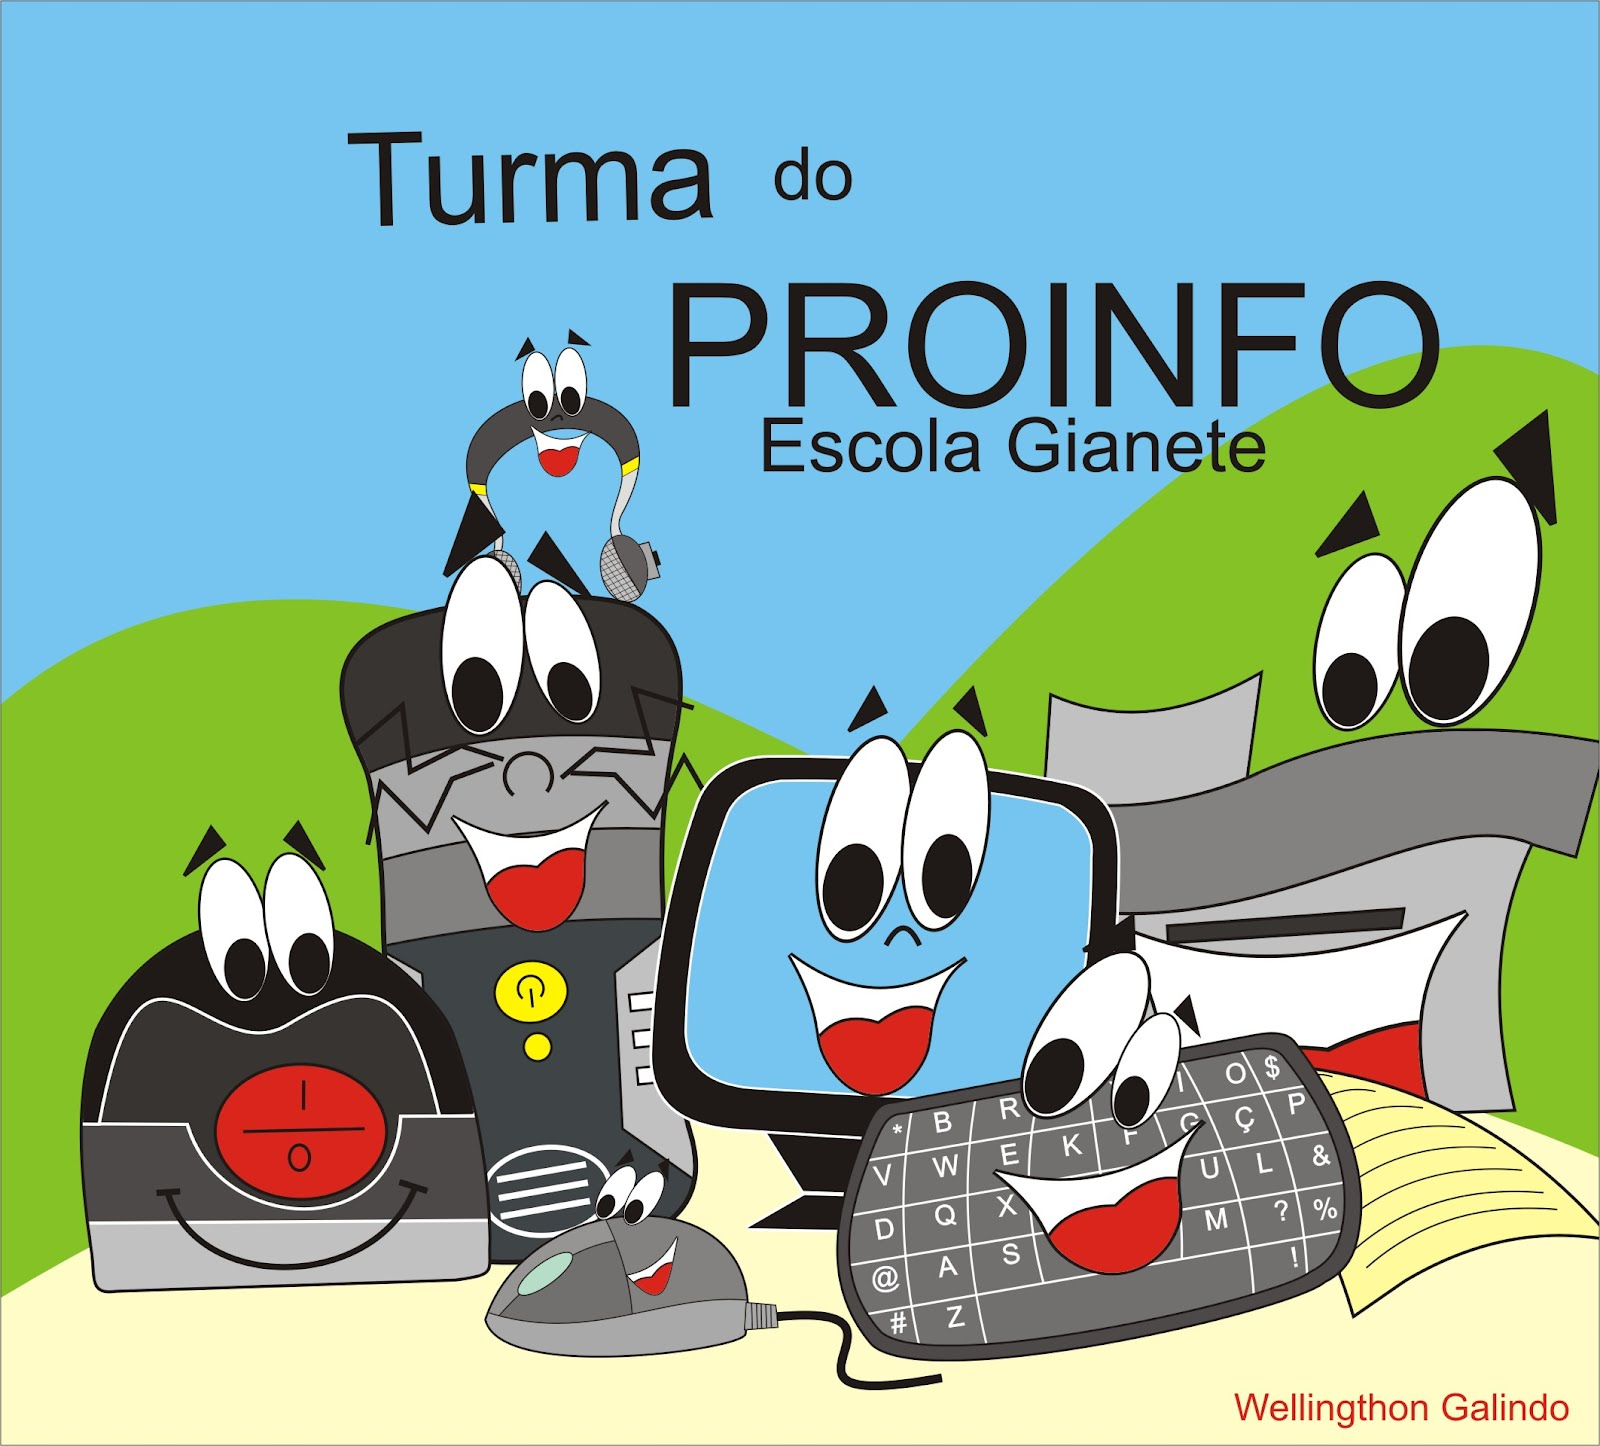 Turminha do Proinfo